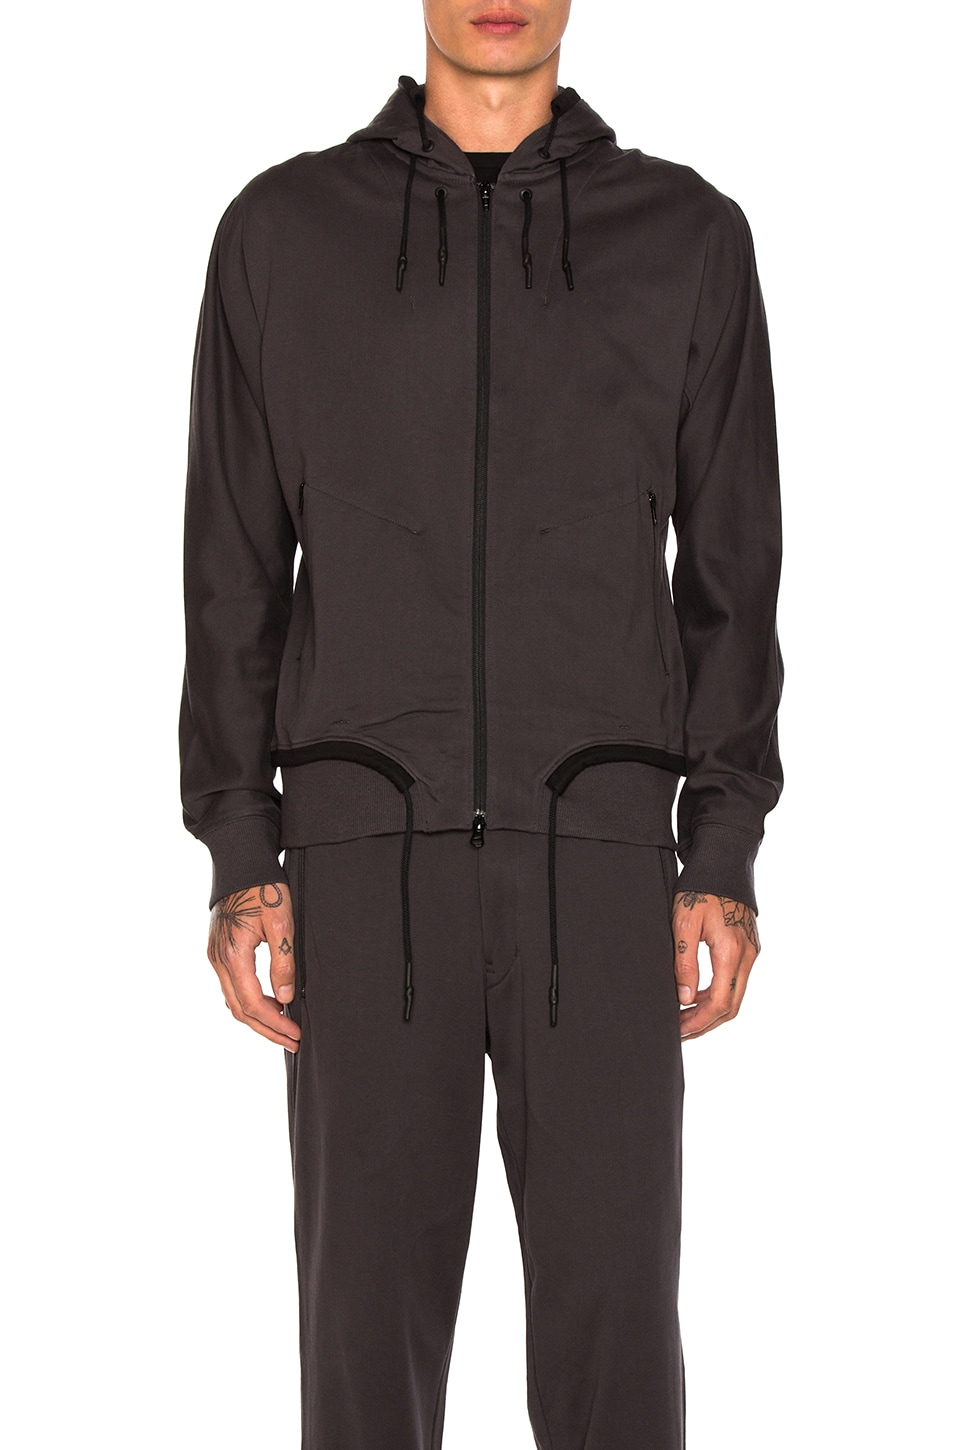 Photo of FT Zip Hoodie by Y-3 Yohji Yamamoto men clothes